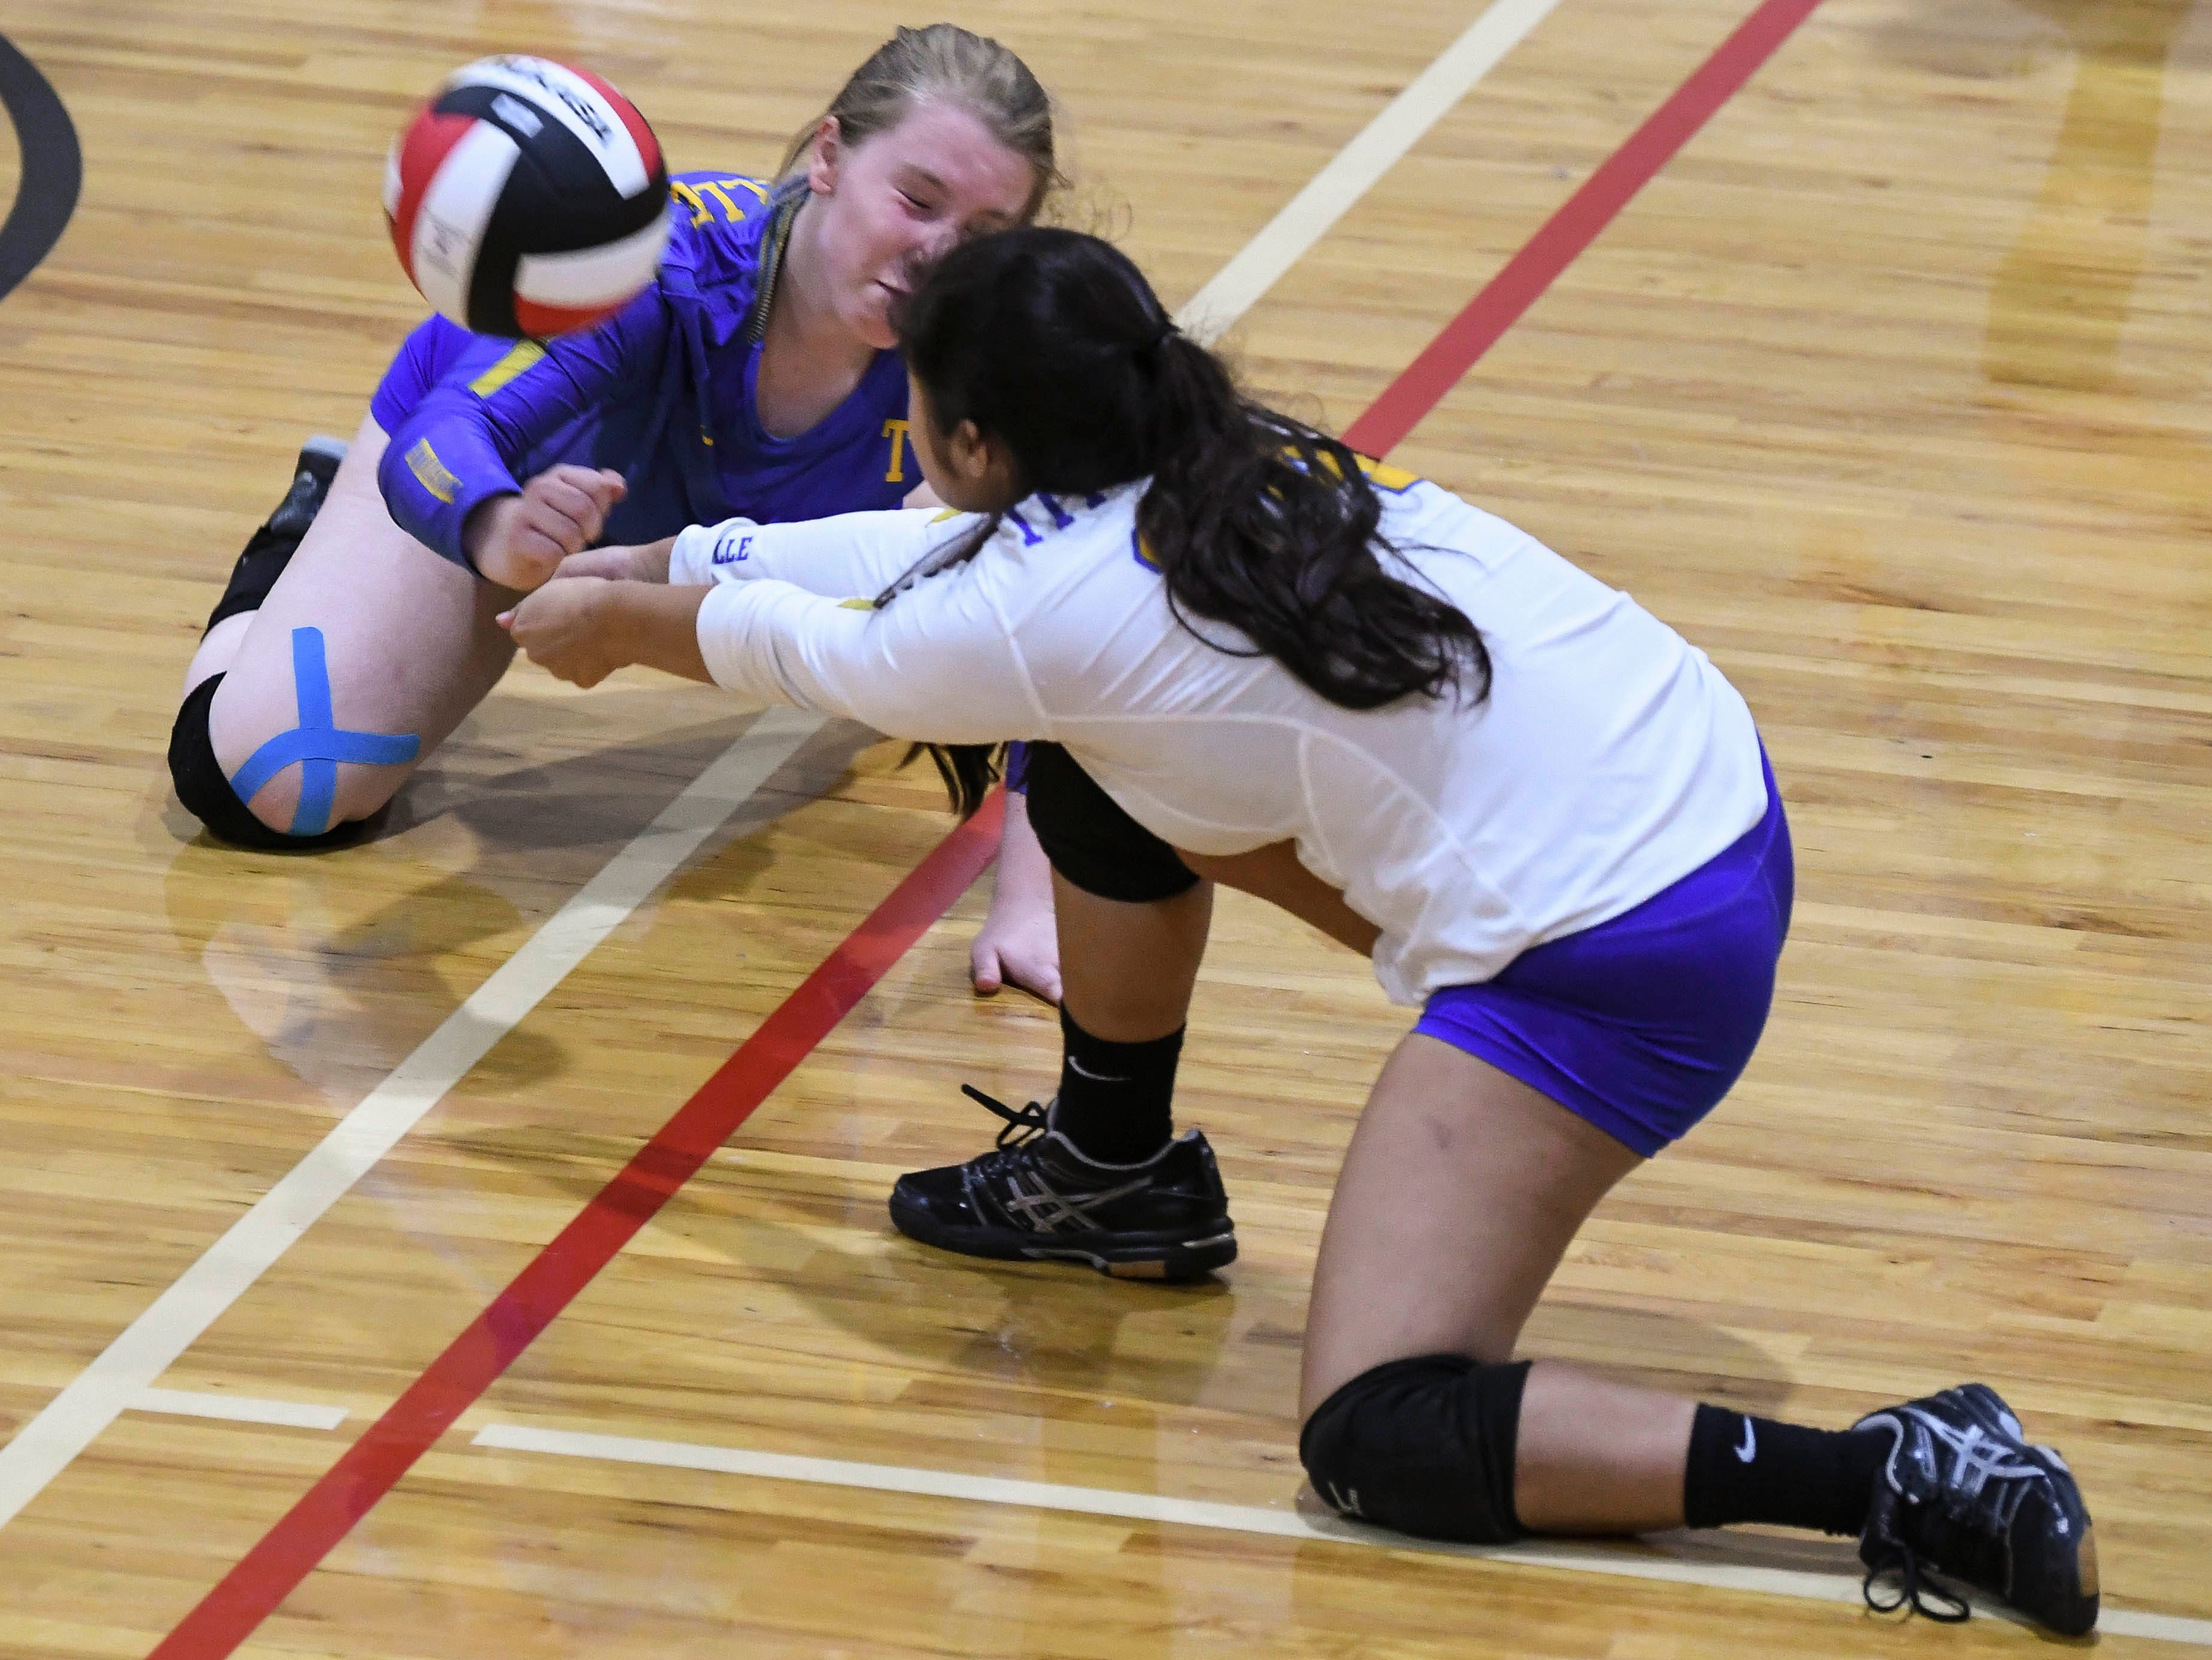 Rochelle Torres and Joella Wahlberg of Titusville collide going for the ball during Thursday's match.